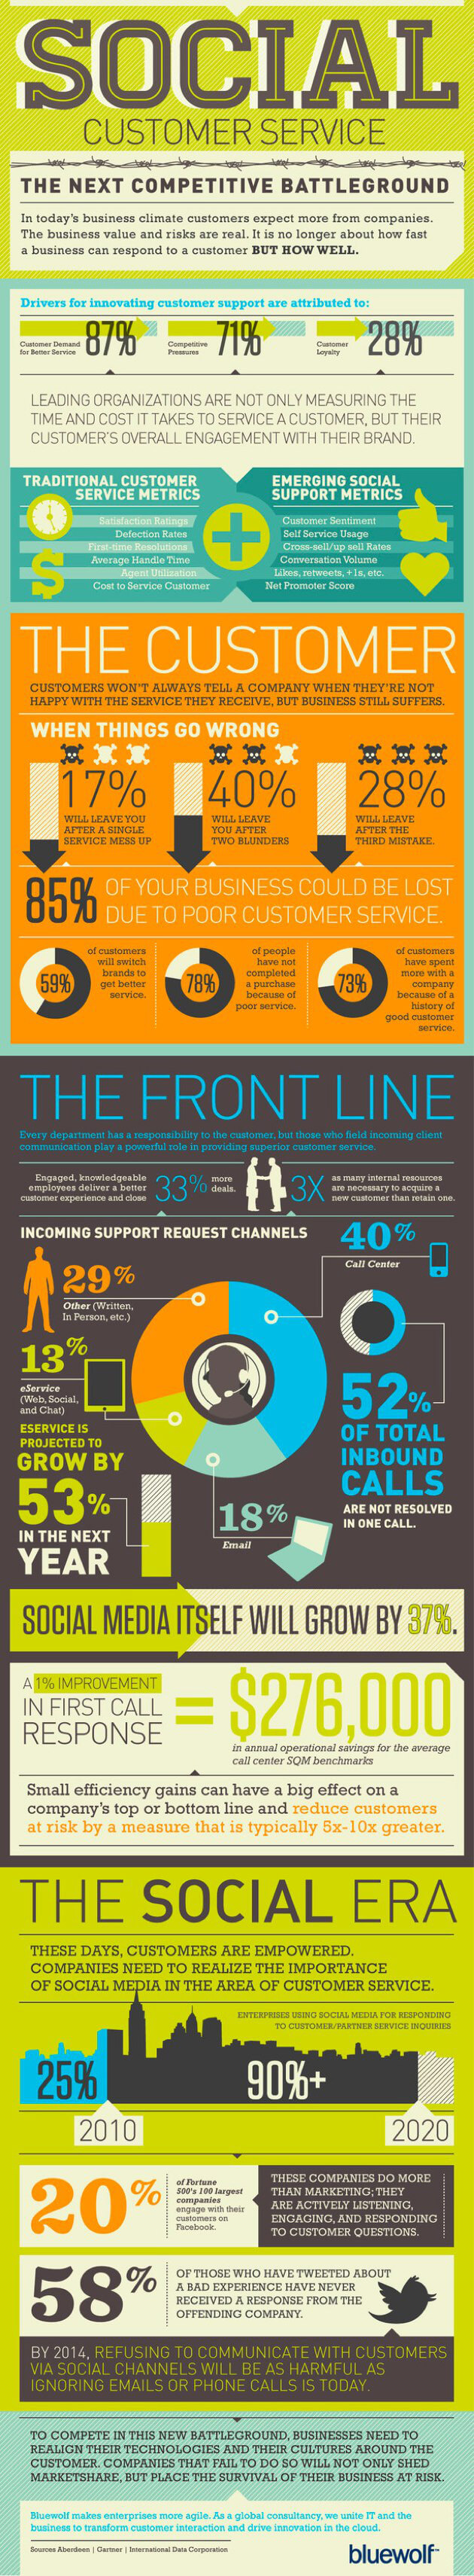 6 online customer service best practices that actually work social customer service infographic from bluewolf